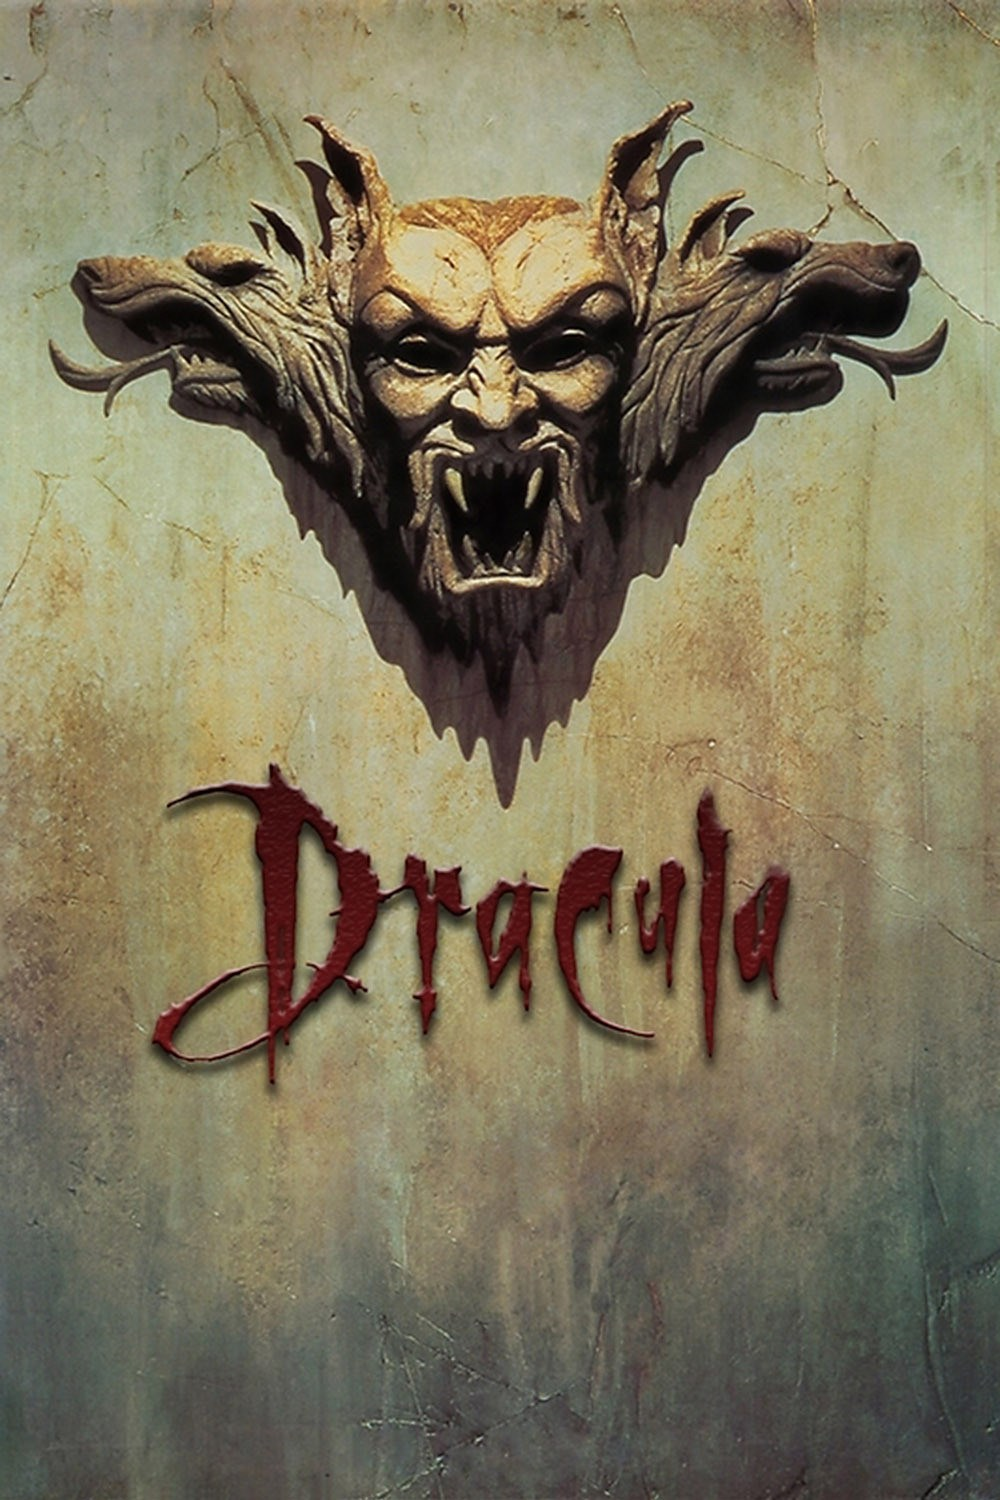 the theme of religion in bram stokers dracula Dracula is an 1897 gothic horror novel by irish author bram stoker it introduced  count dracula  contrary to popular belief, the name dracula does not  translate to son of the devil in romanian, which would be pui de drac stoker  came.